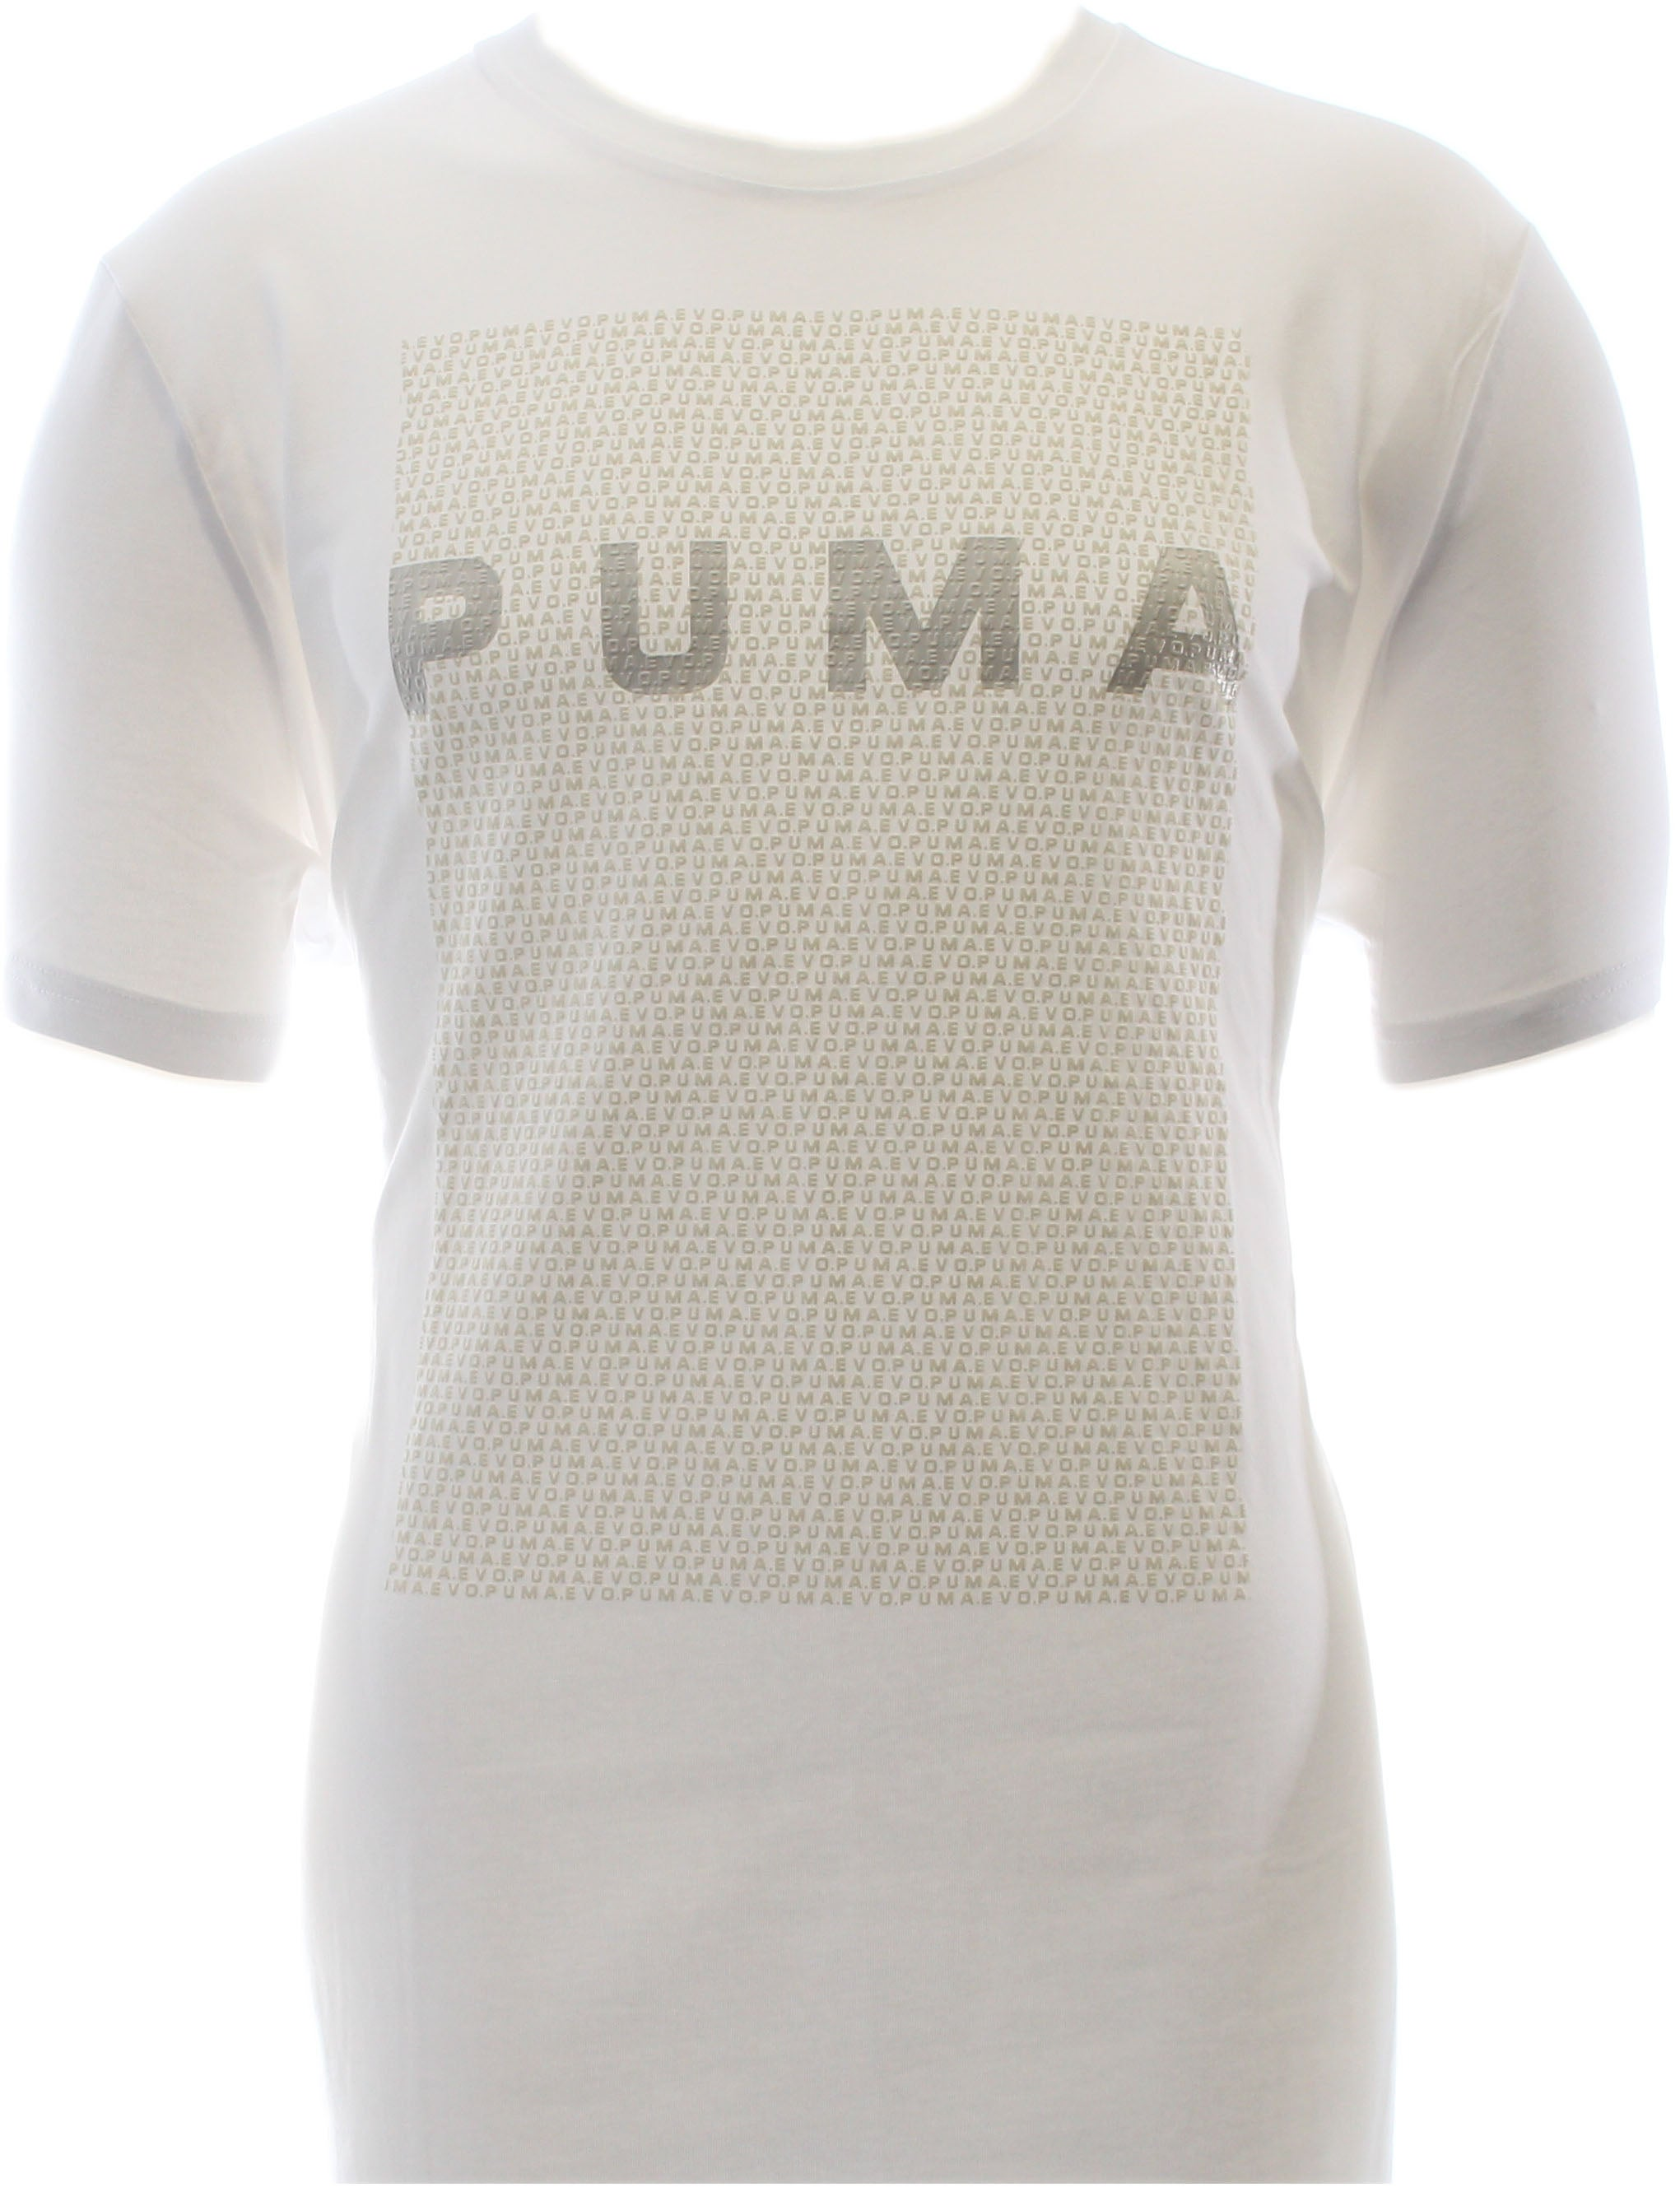 Puma Evo Long Tee White - Mens  - Size